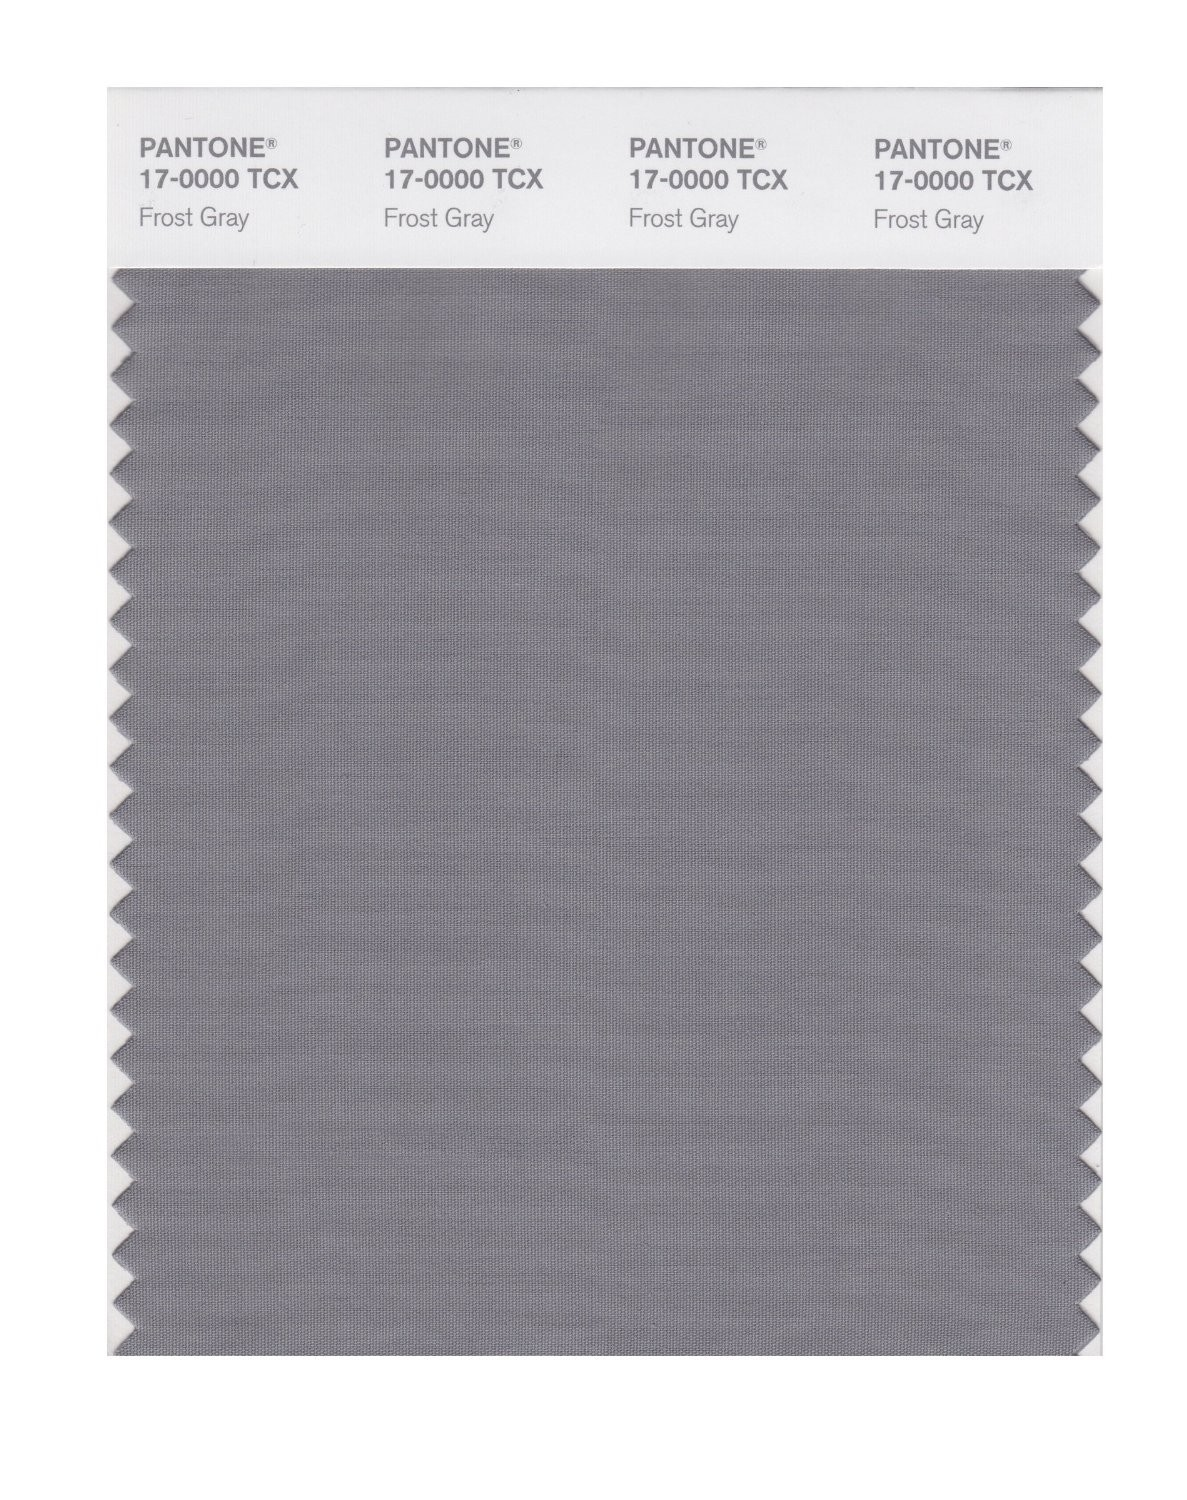 Pantone 17-0000 TCX Swatch Card Frost Gray